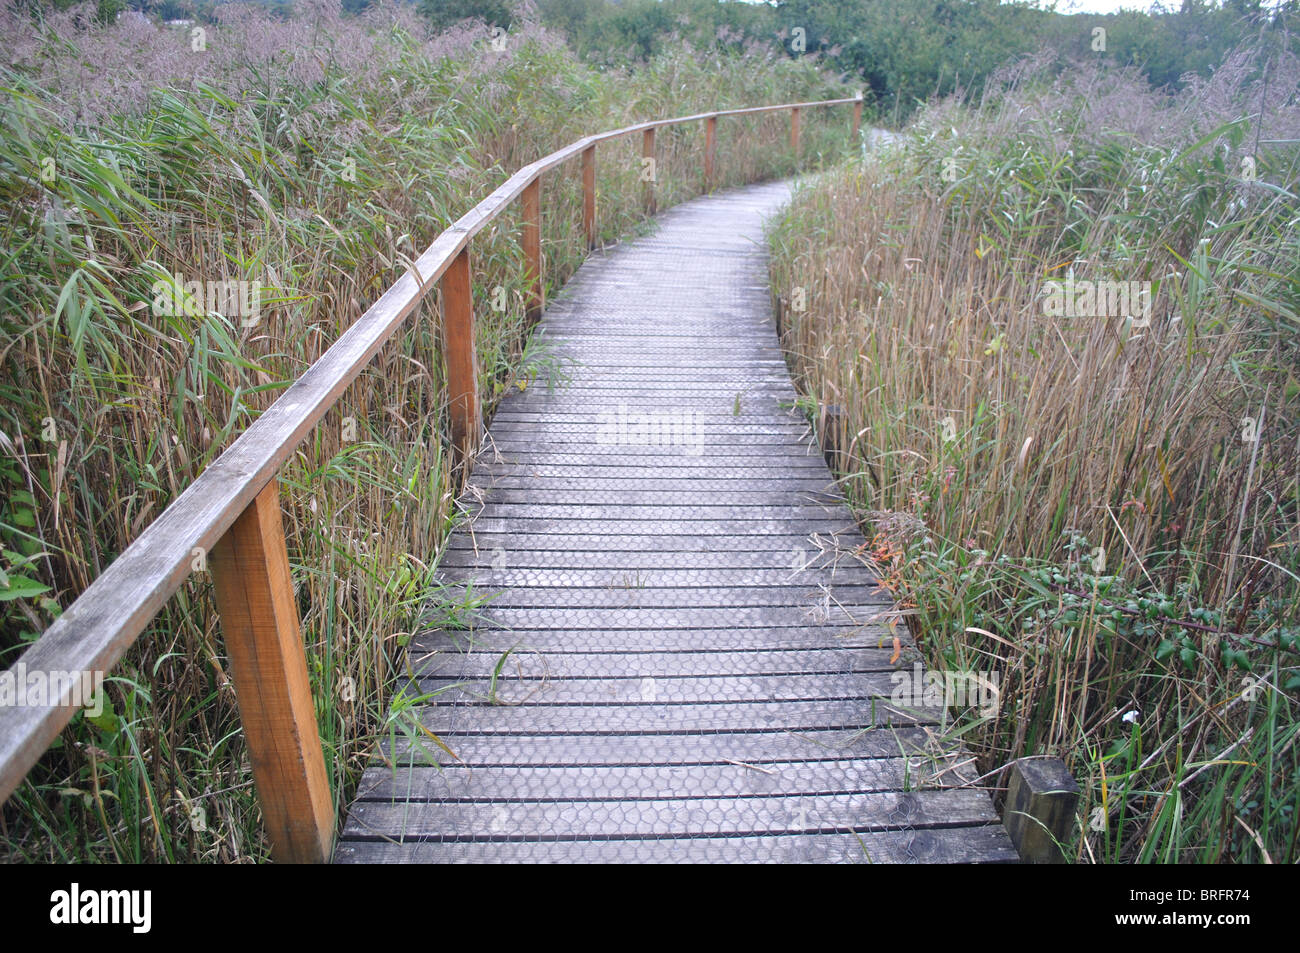 Boardwalk path through River Teifi Marshes nature reserve, pembrokeshire, wales, united kingdom Stock Photo